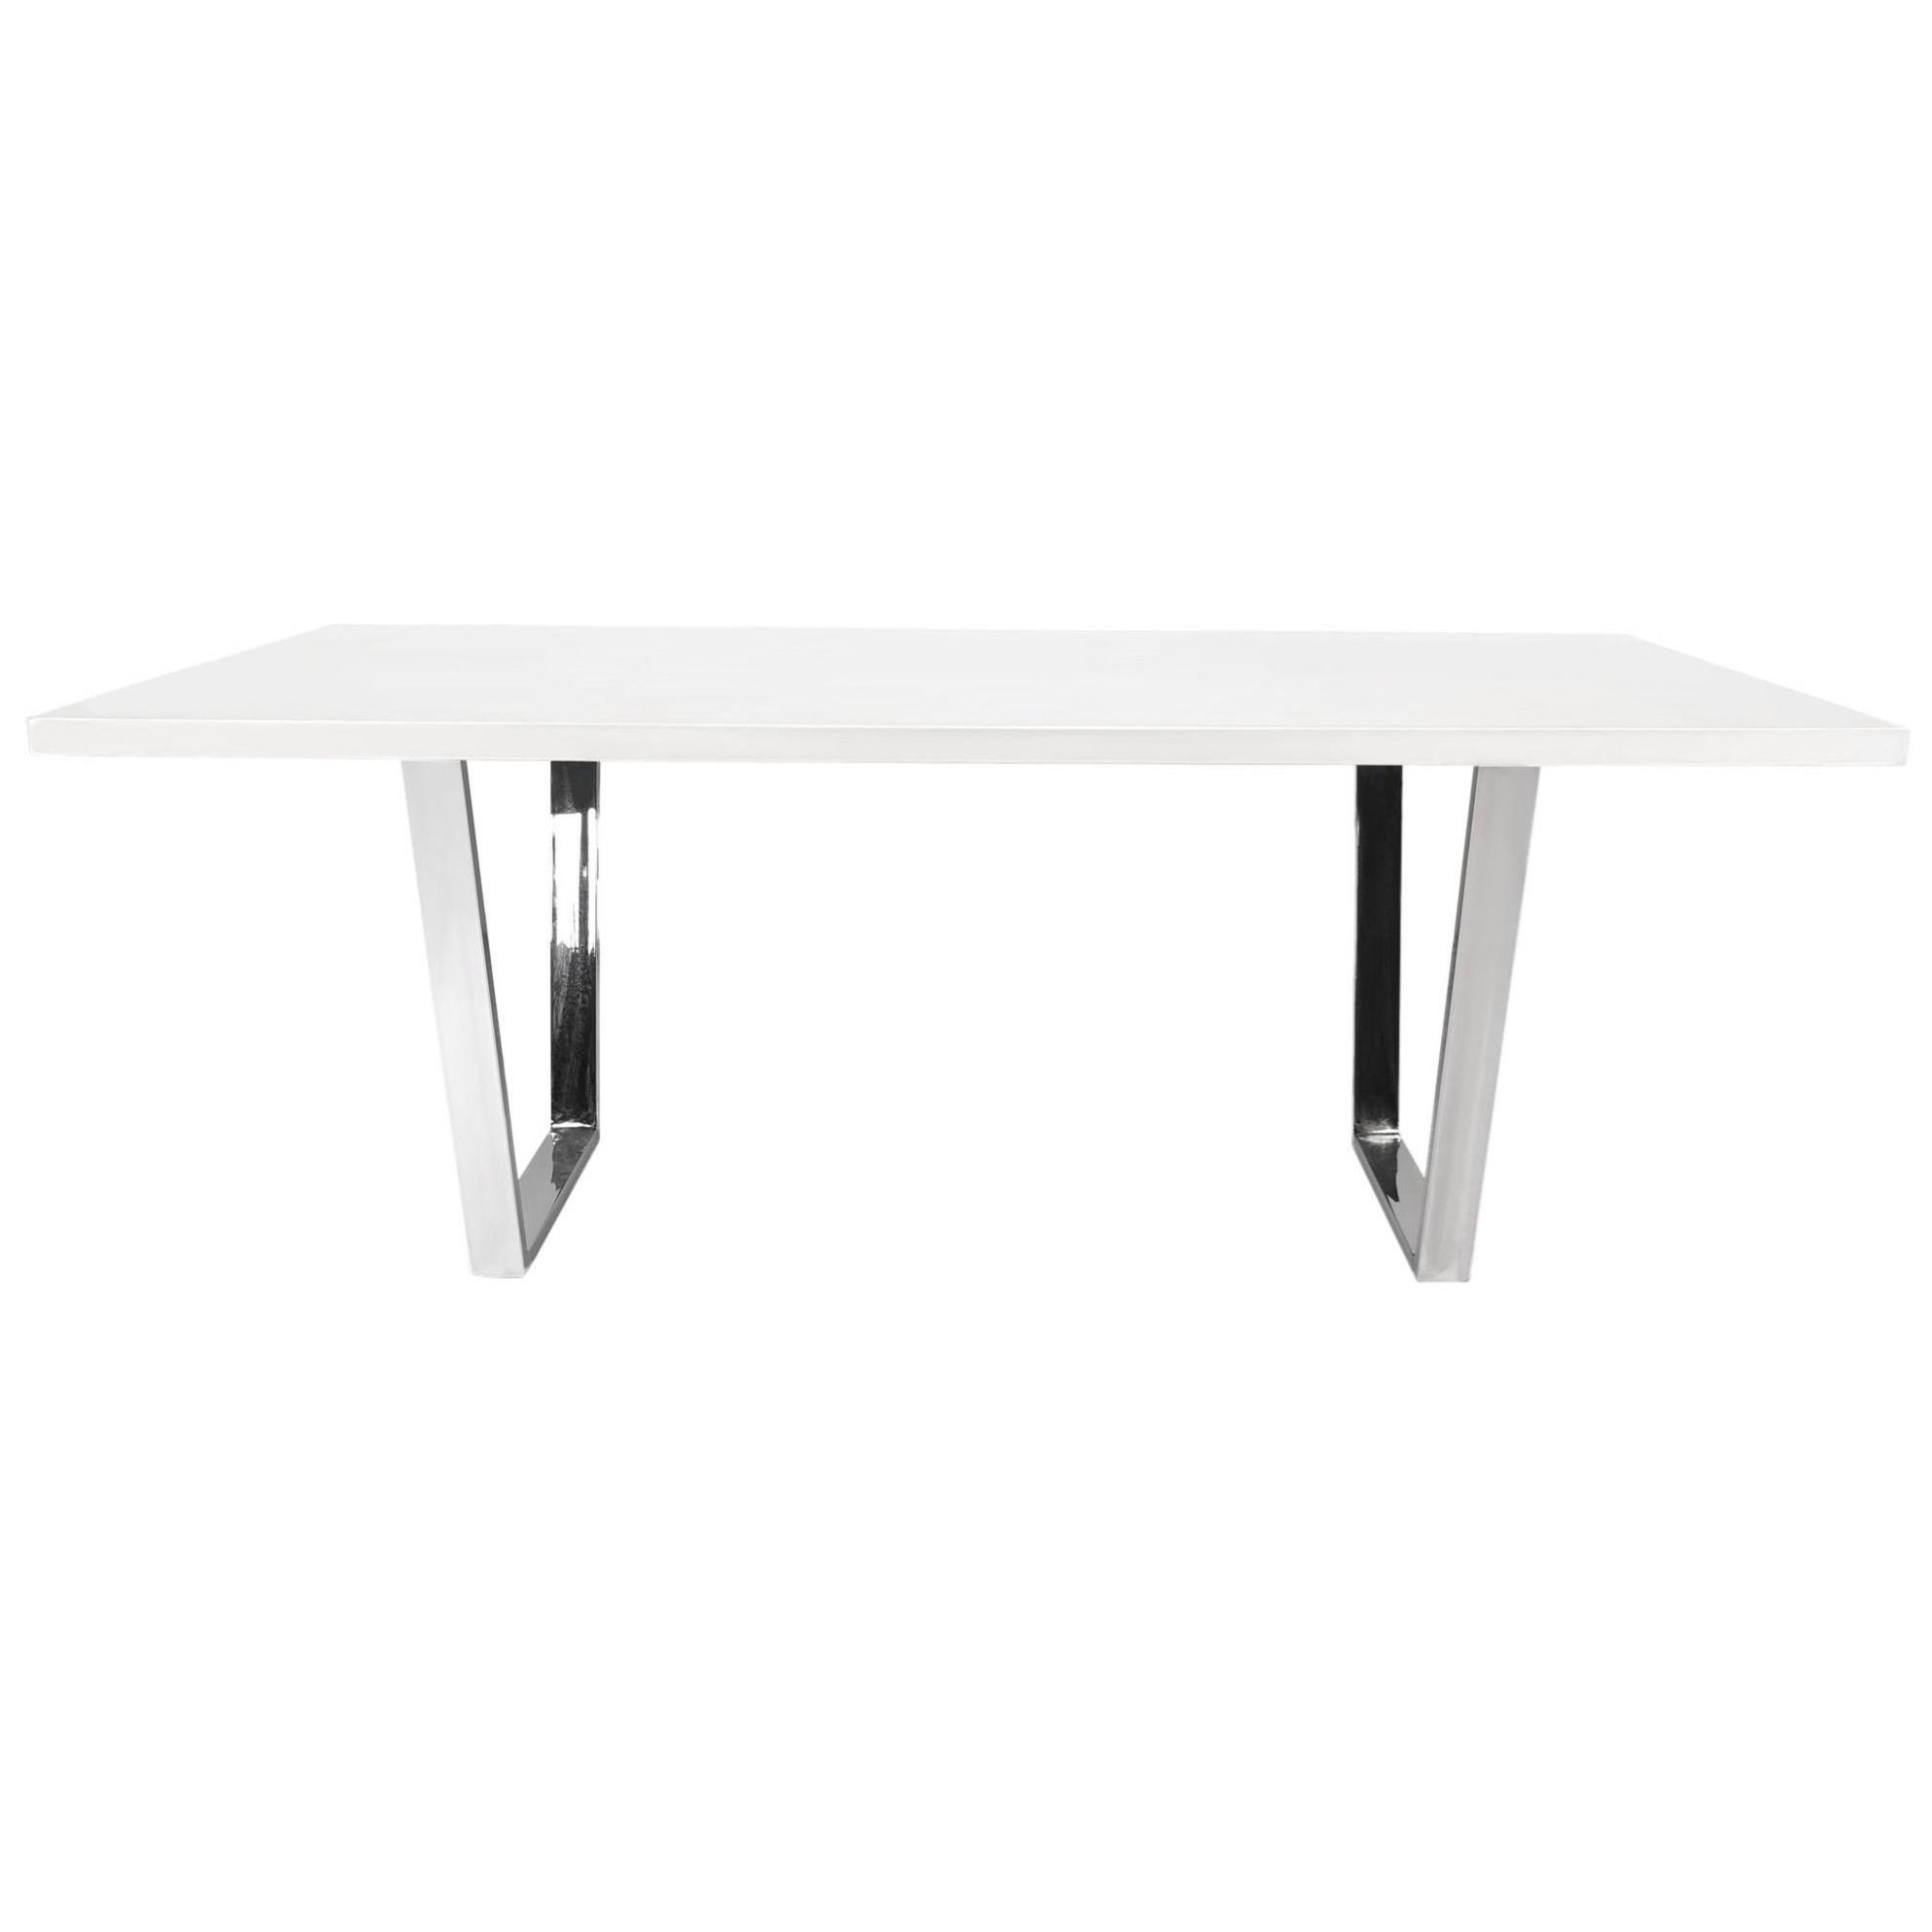 diamond sofa mirage dining table red knot dining tables rh redknothawaii com Rectangular Dining Table Jofran Dining Table